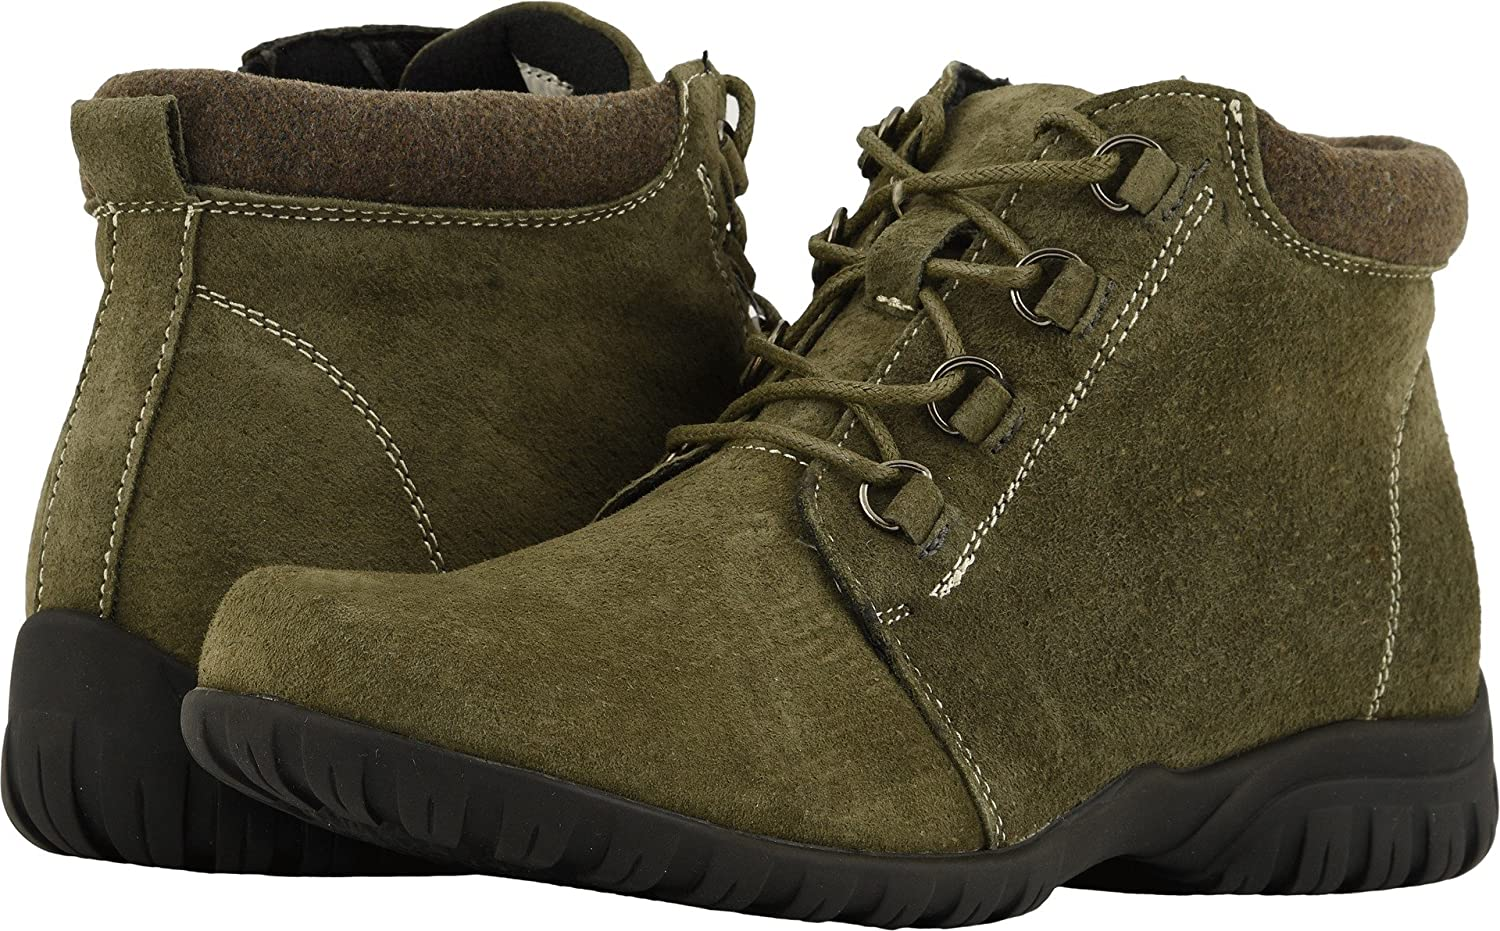 Propet Women's Delaney Ankle Bootie B078YP2Y5T 8 NARROW Narrow US|Olive Suede